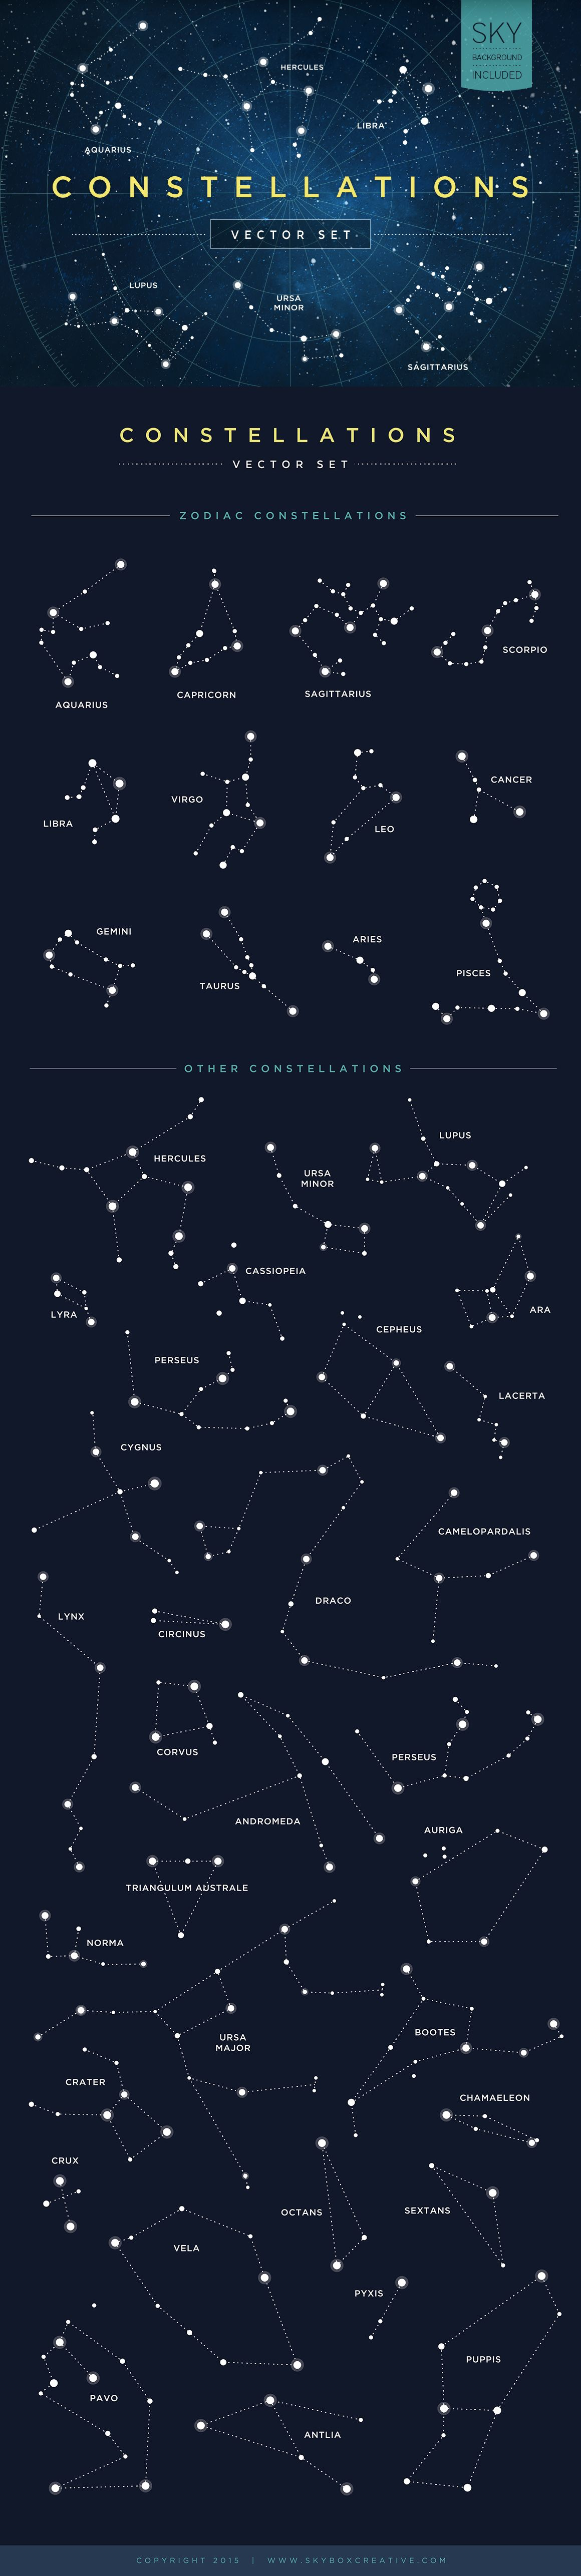 Look to the sky for inspiration. #constellations #zodiac #universe #stars #graphicdesign #geometry #vector #illustration #horoscope